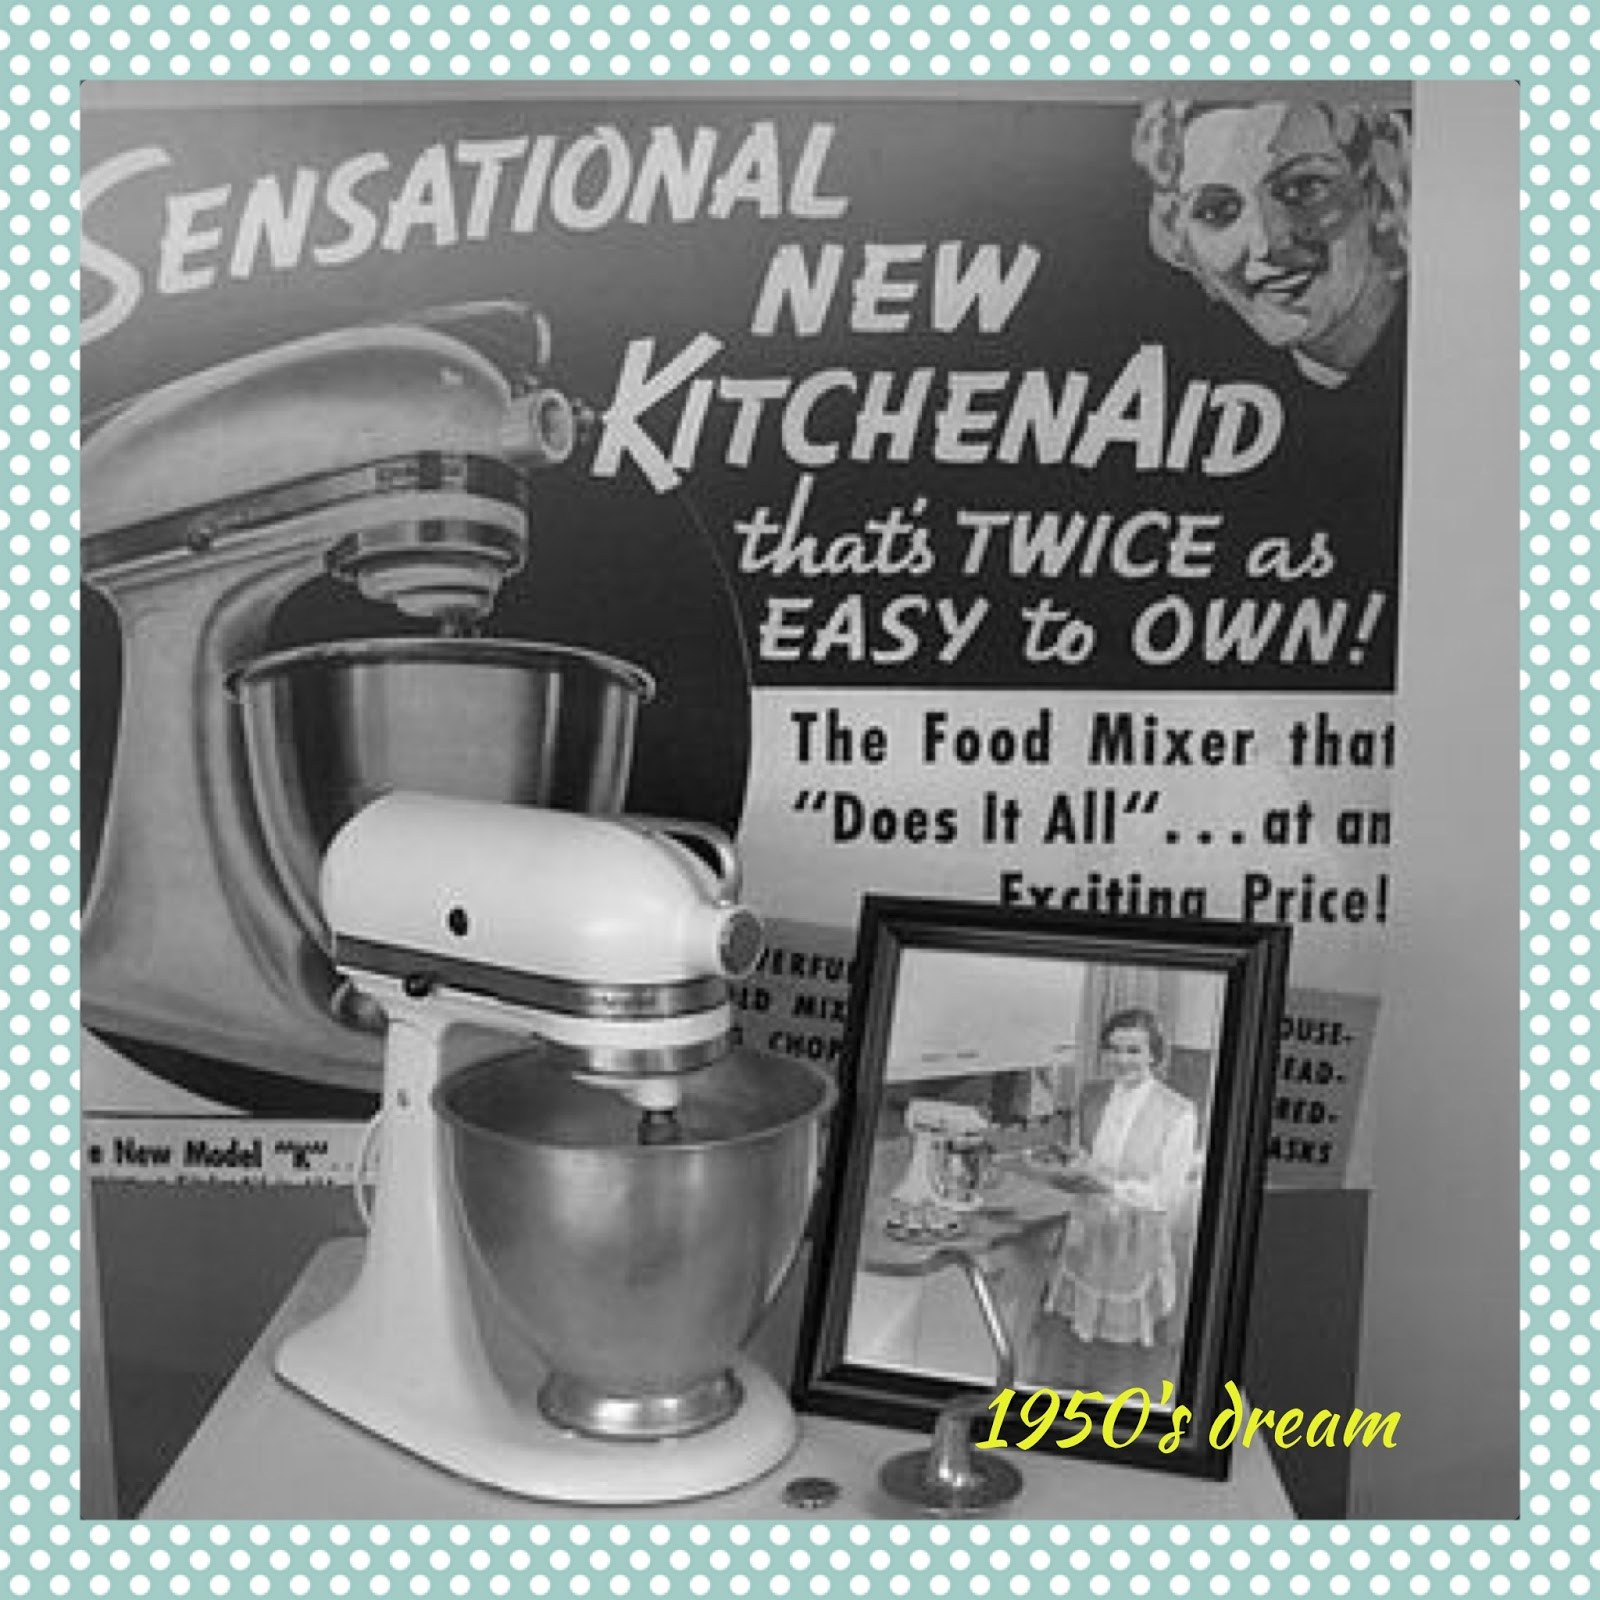 My Kitchen Has Ugly Bathroom Tile: Six Little Hearts: My KitchenAid Stand Mixer